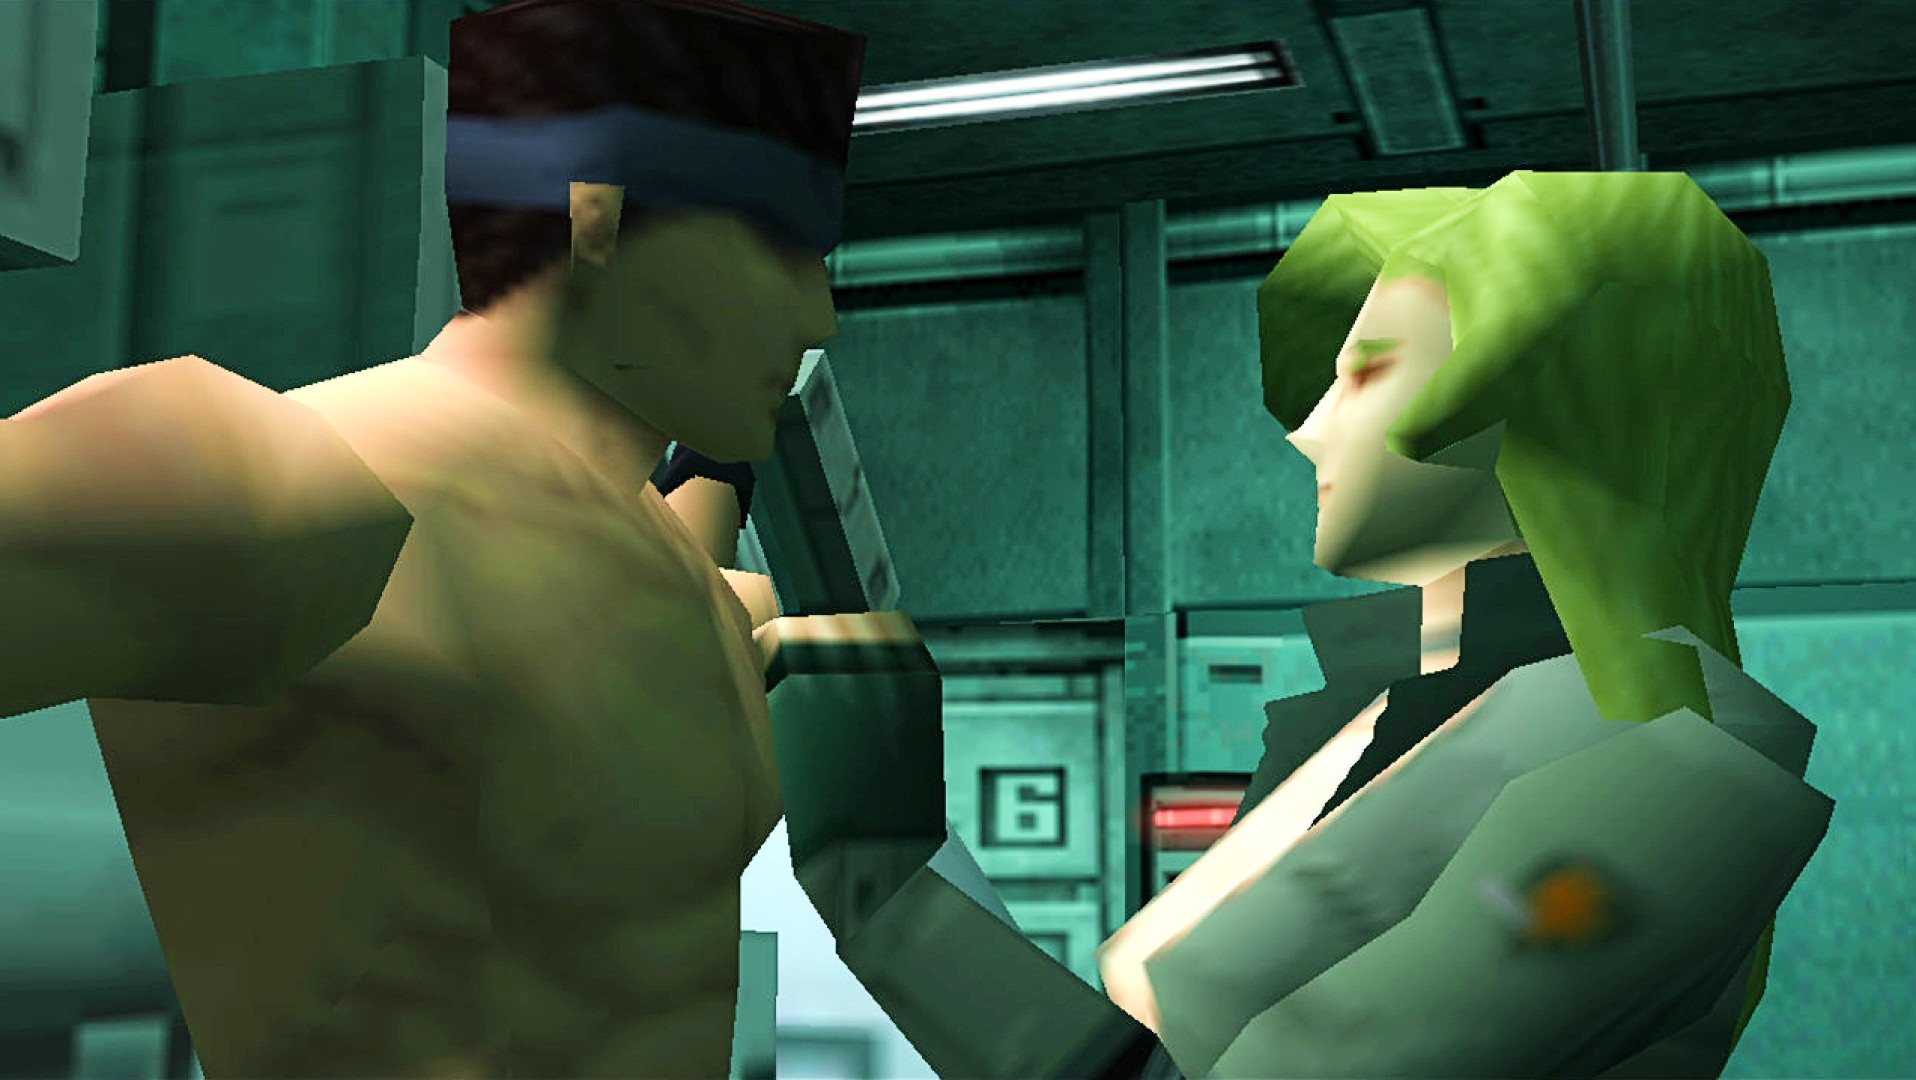 You can now play Metal Gear Solid with a DualSense controller on PC